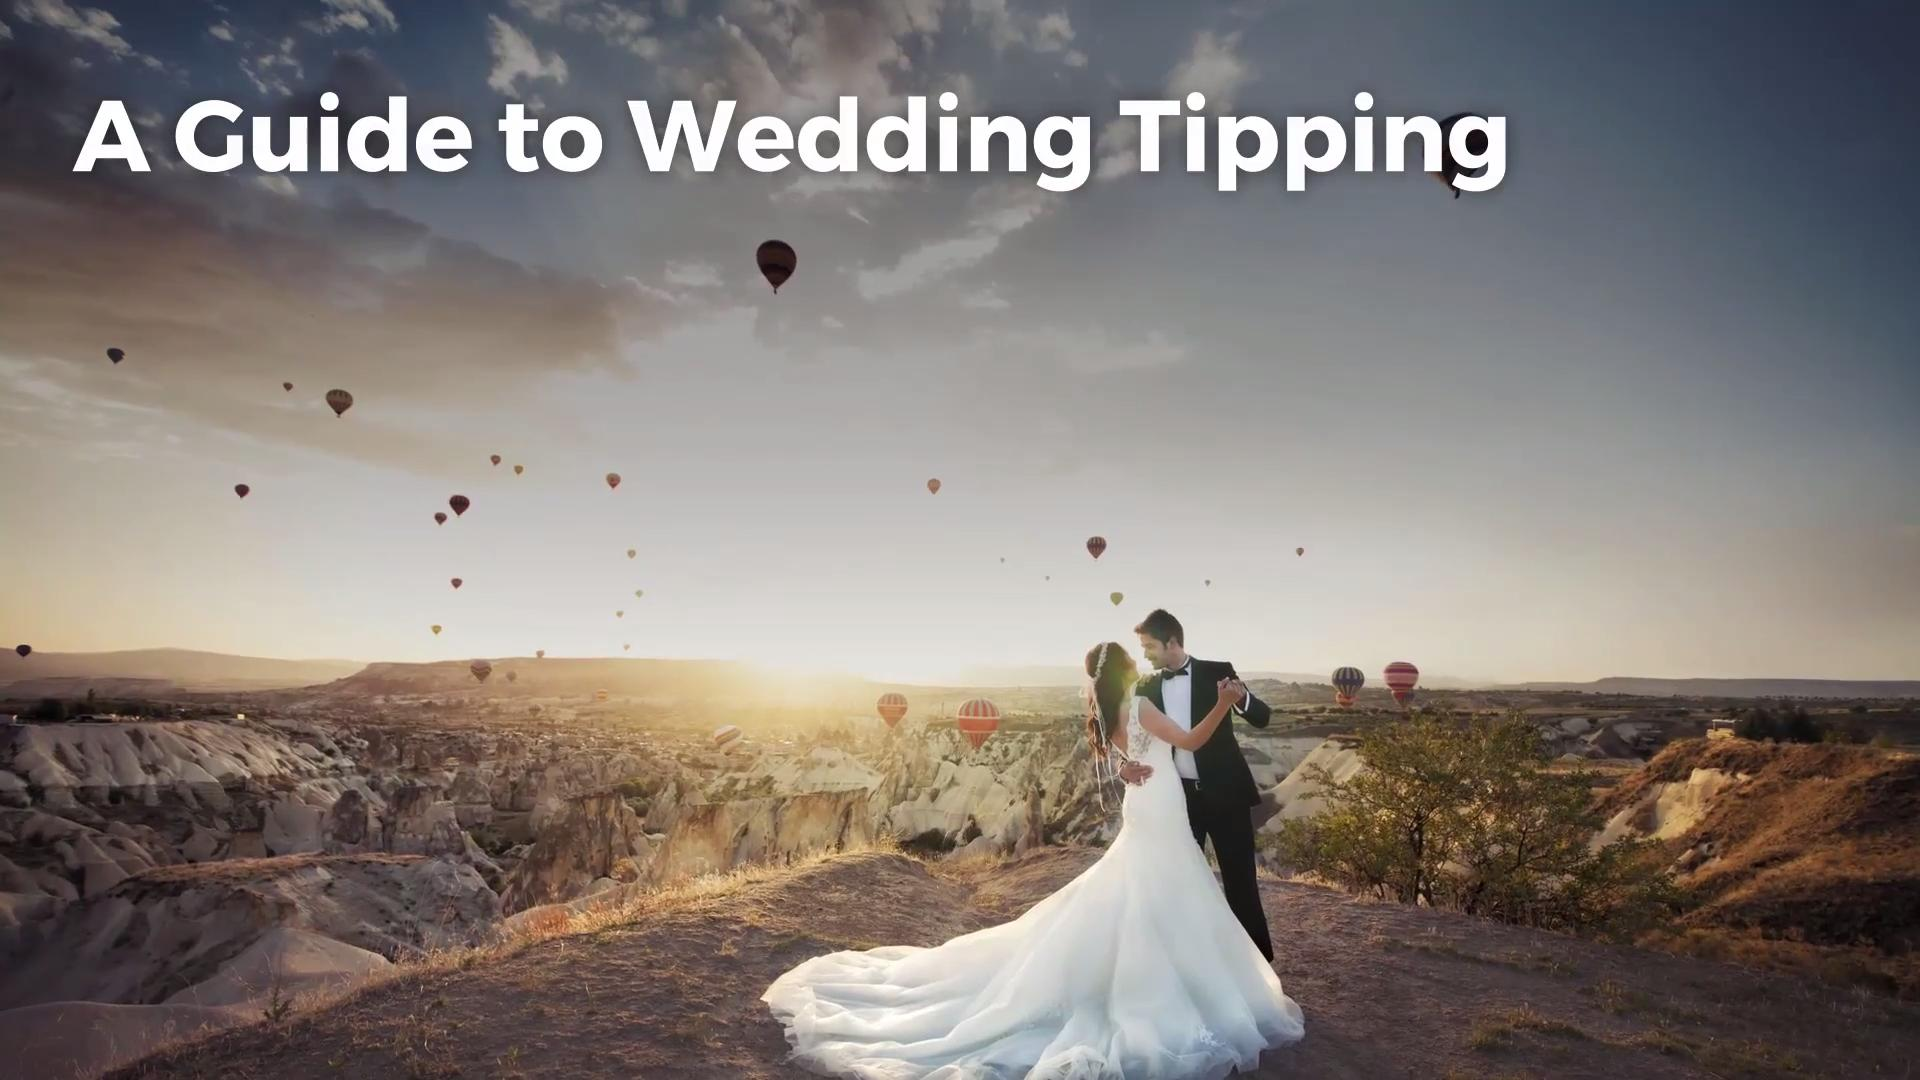 Tipping at wedding reception